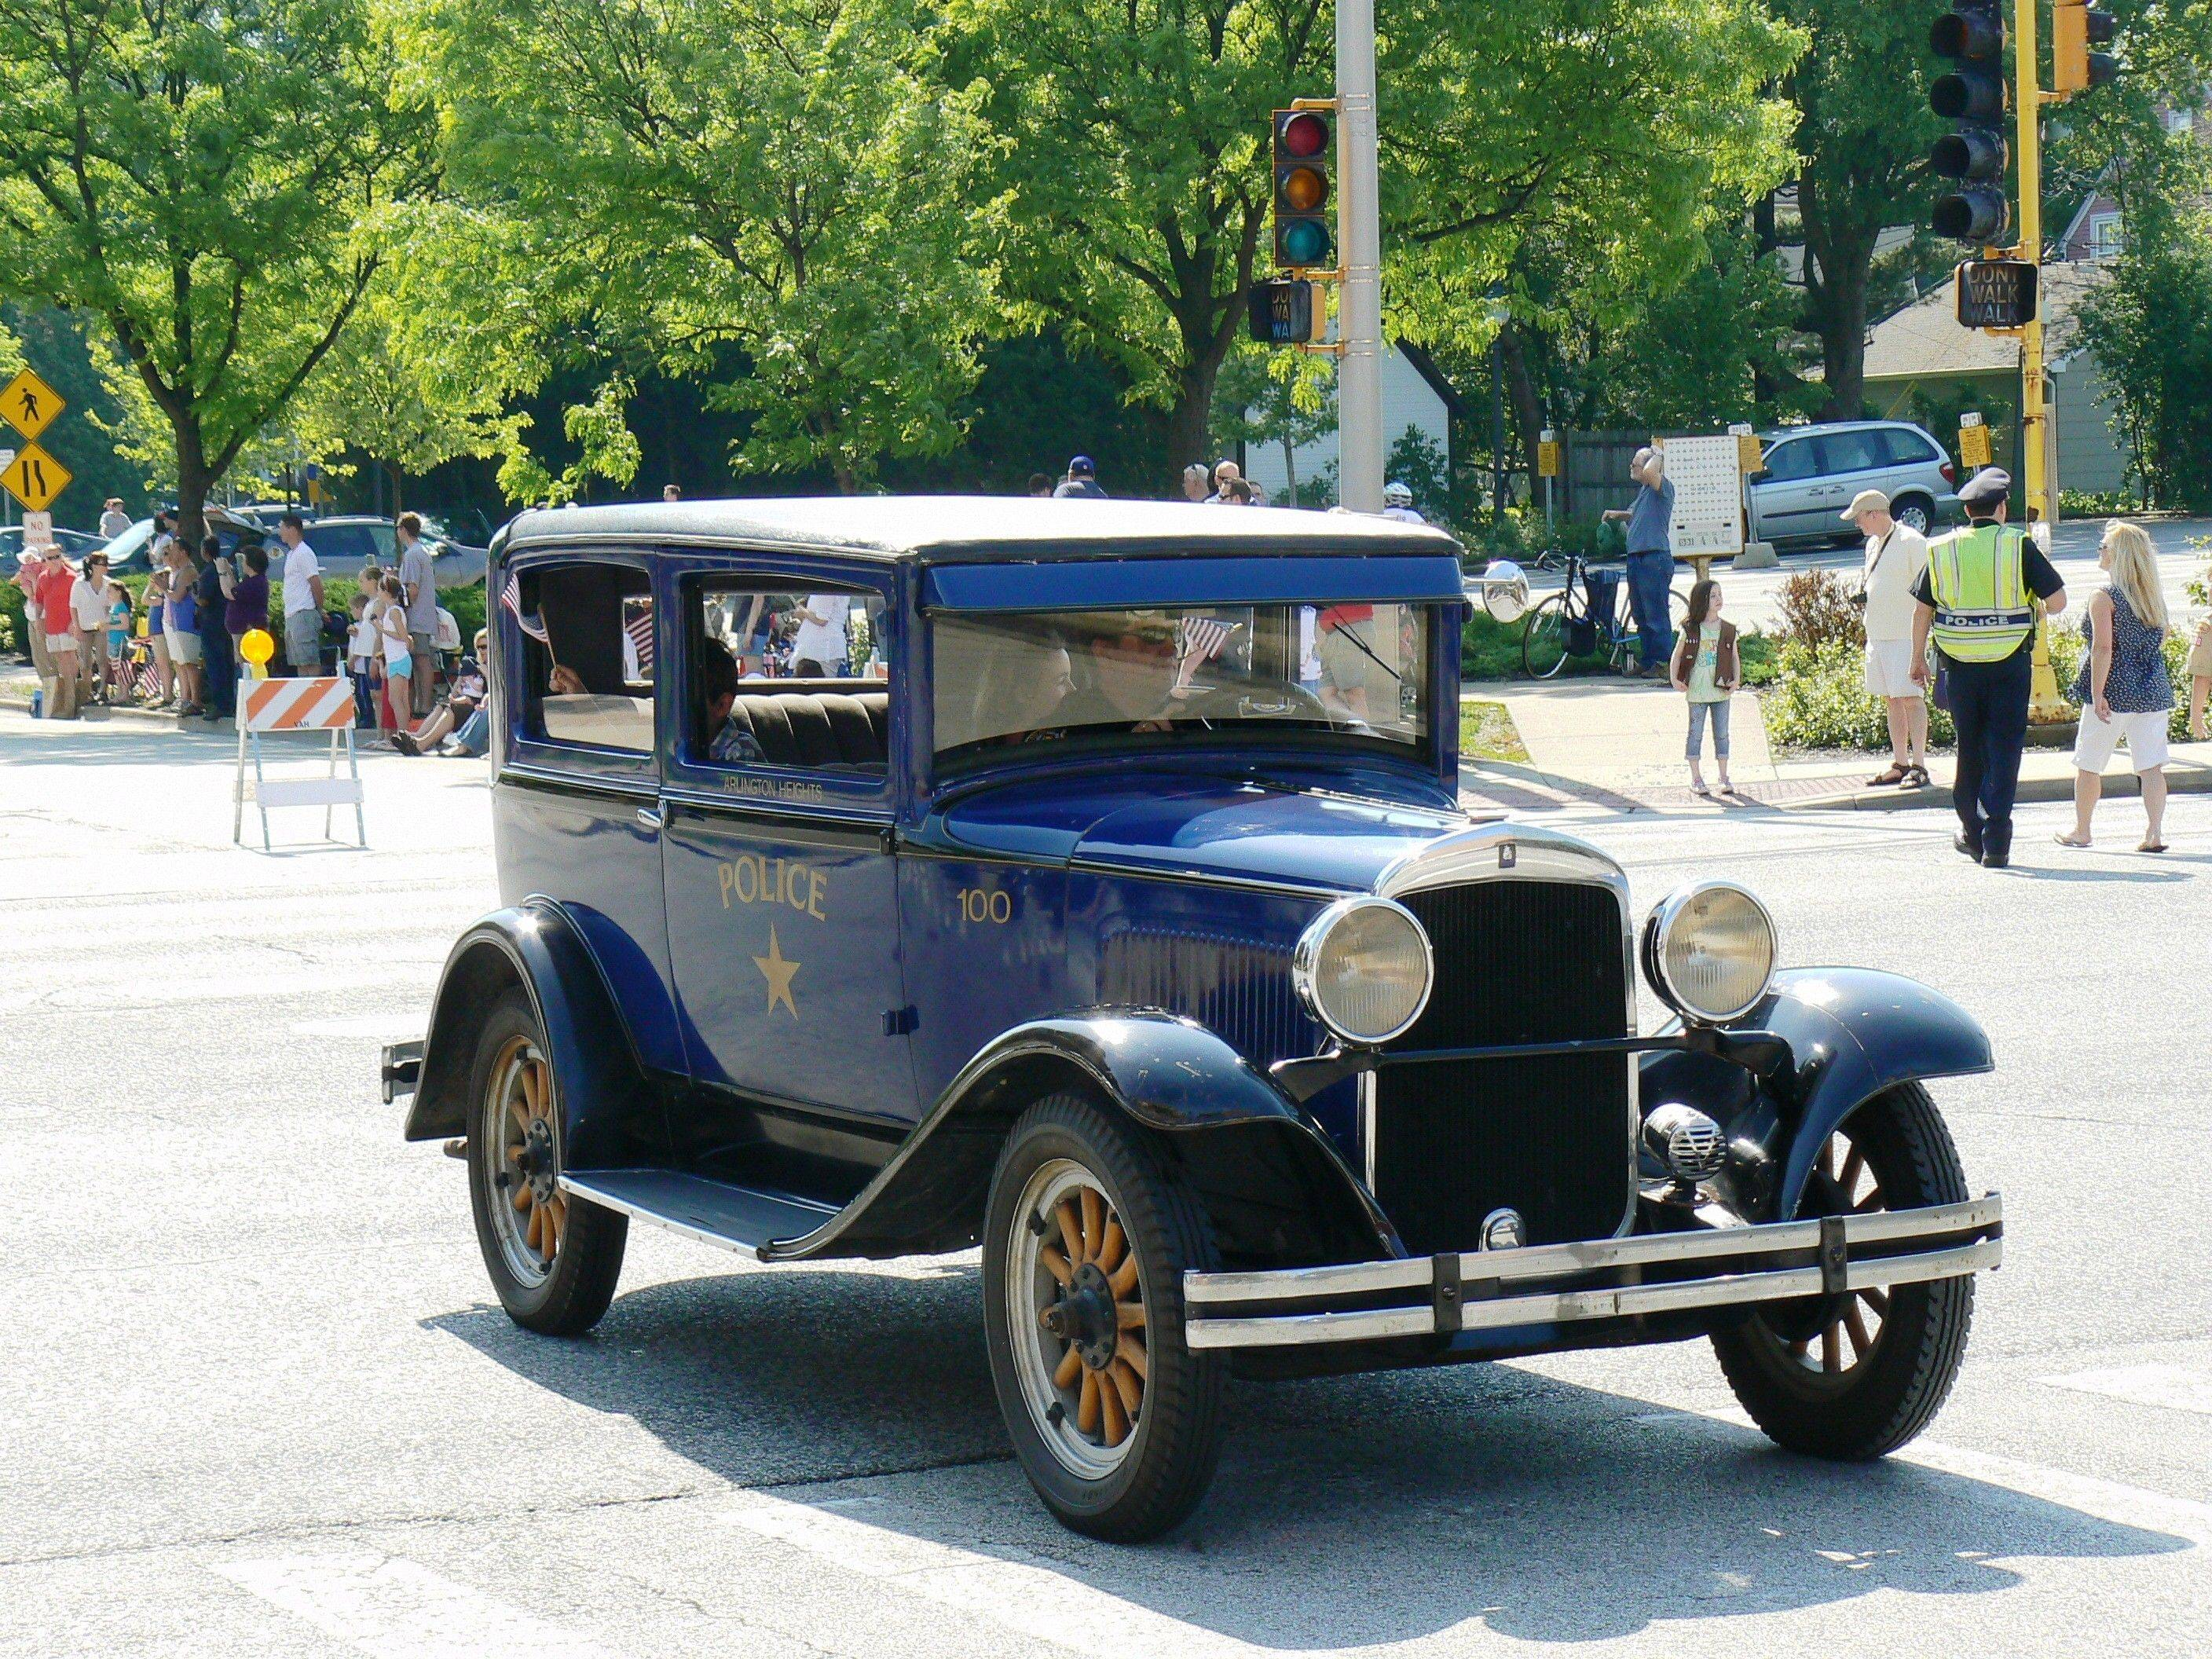 Fundraising efforts are ongoing to restore a vintage 1929 Plymouth similar to the first Arlington Heights police squad car. Costs of the restoration are estimated at more than $24,000.